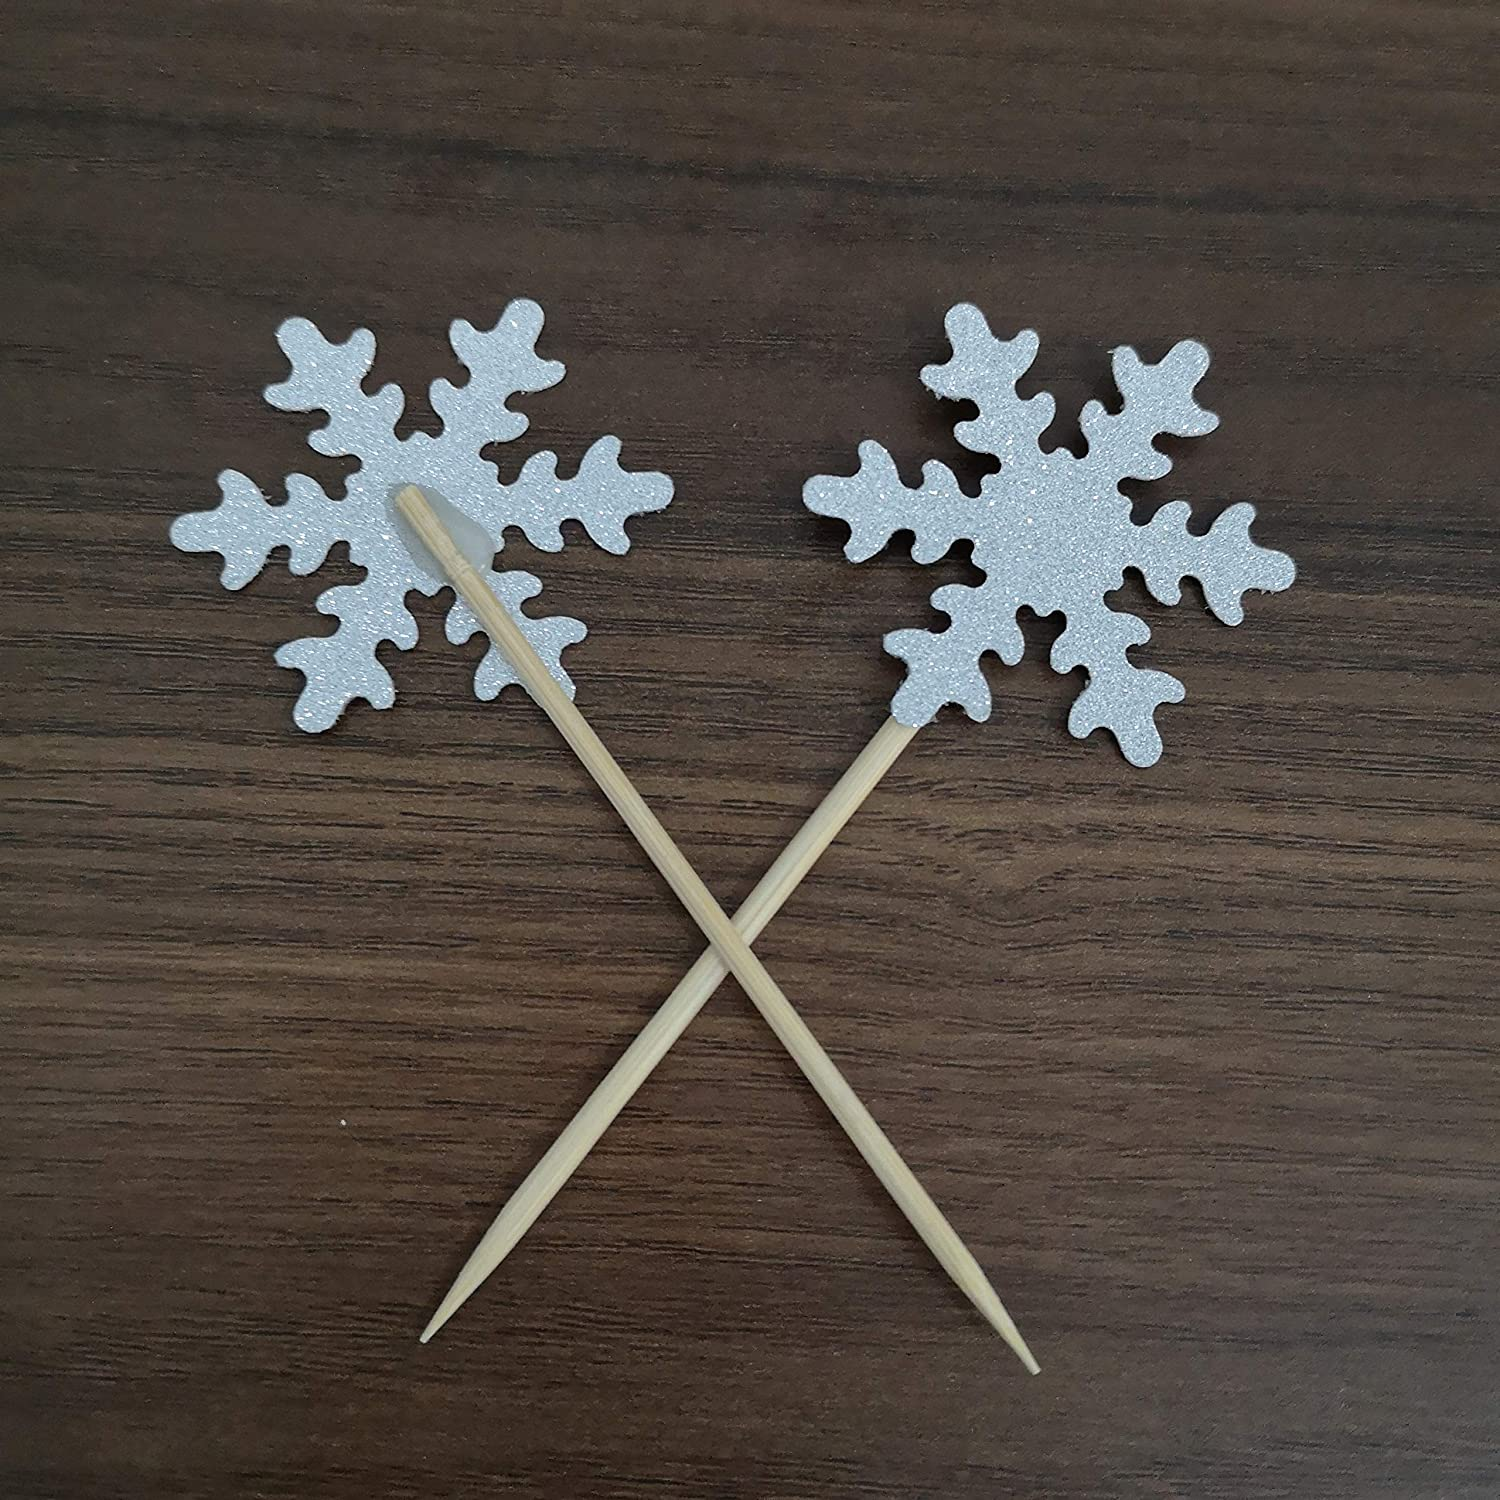 20pcs Sliver Glitter Snowflake Cupcake Toppers Christmas Themed Decorsations Frozen Party Supplies